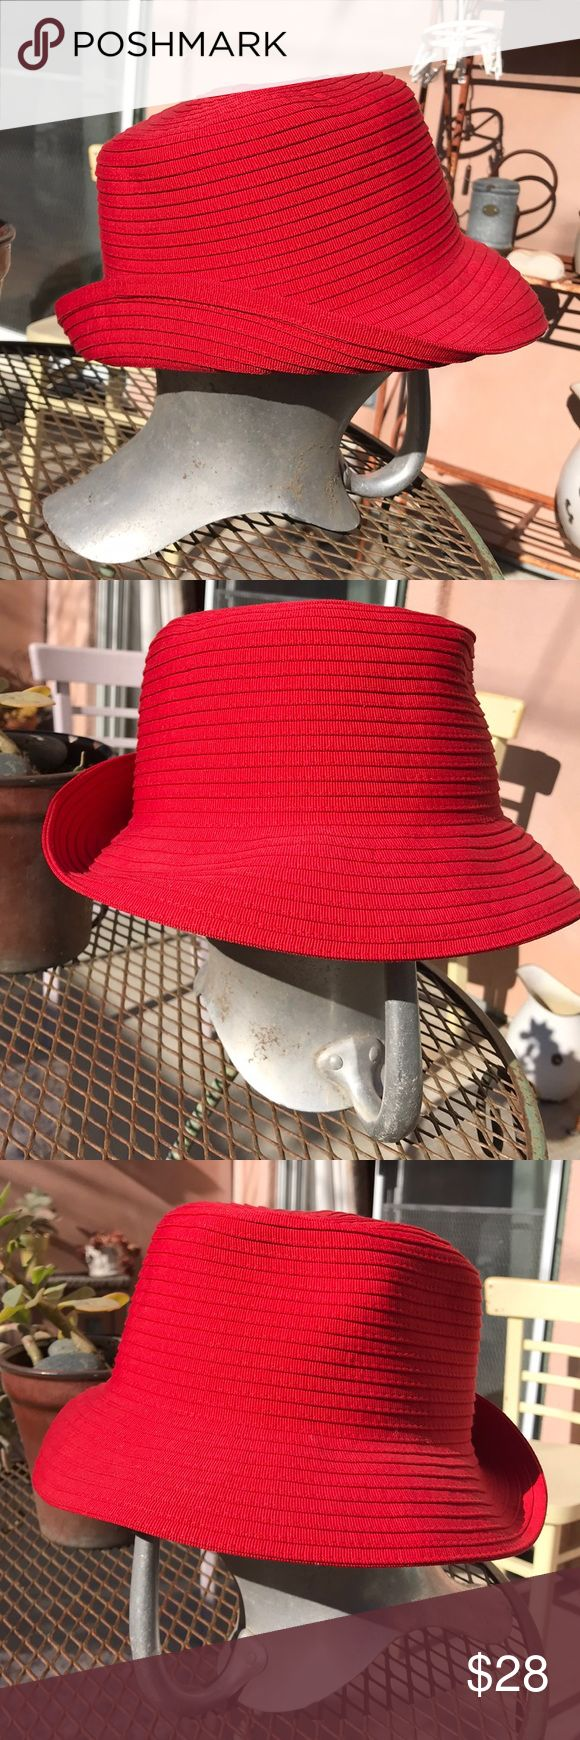 San Diego Hat Co 7.5 60 cotton, 40 poly, perfect Is stored in hat box, worn one time, no fading, mars of any kind. Can flip brim up or down, Red Fashion Bucket Hat San Diego Hat Company Accessories Hats